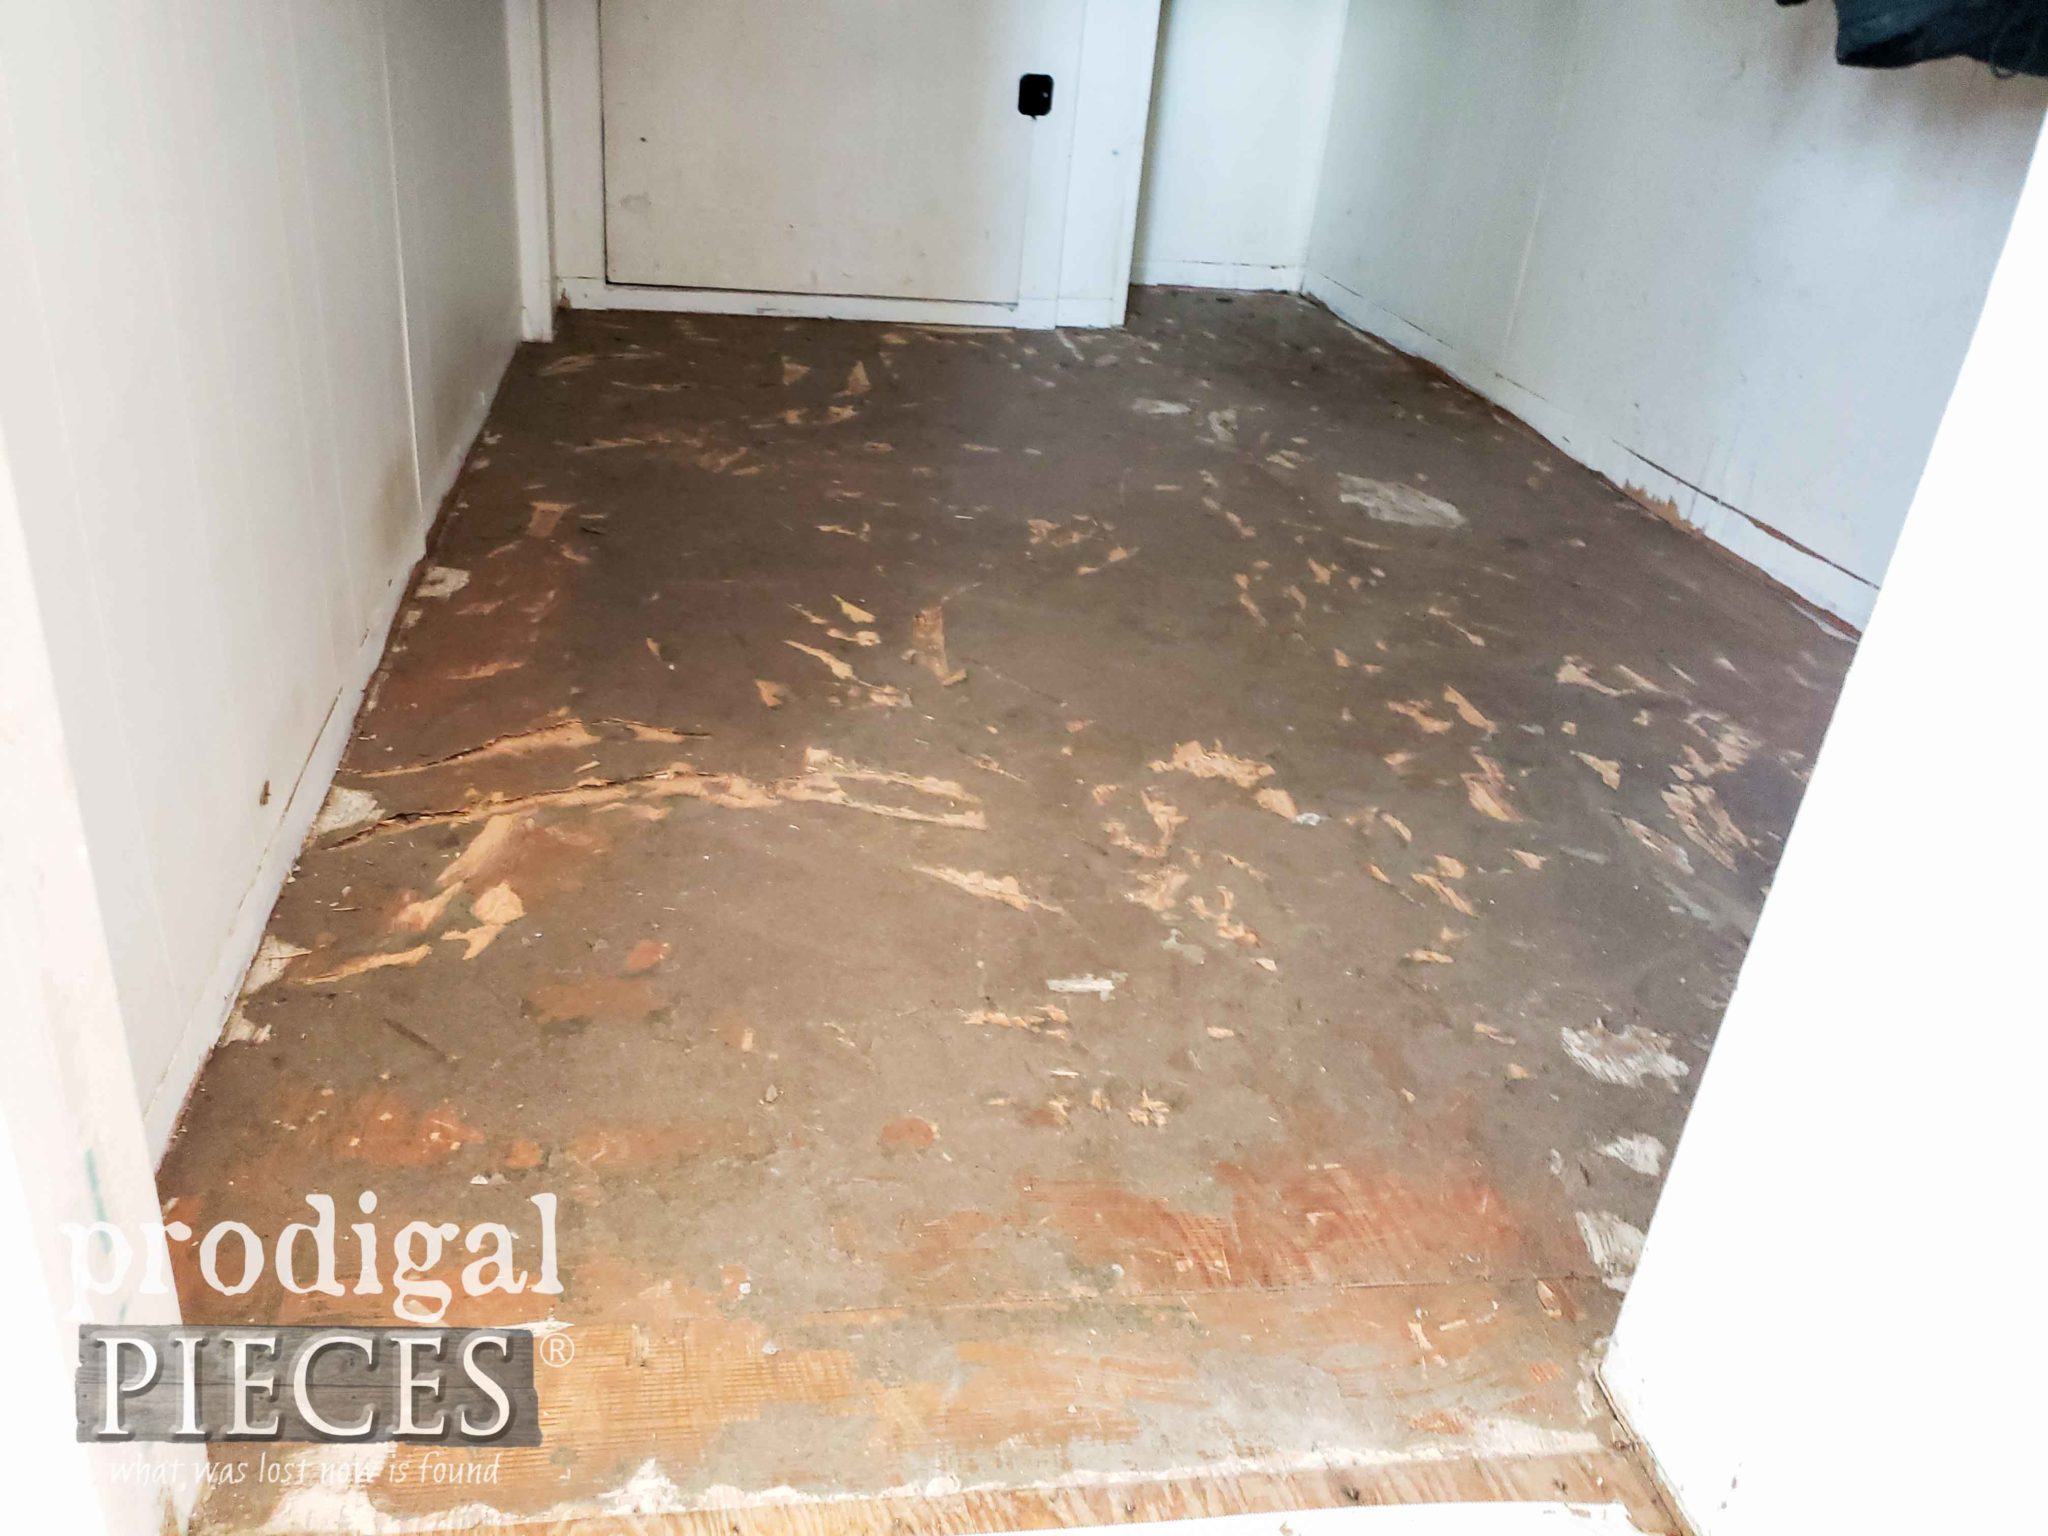 Mudroom Update with Replacing Floor | prodigalpieces.com